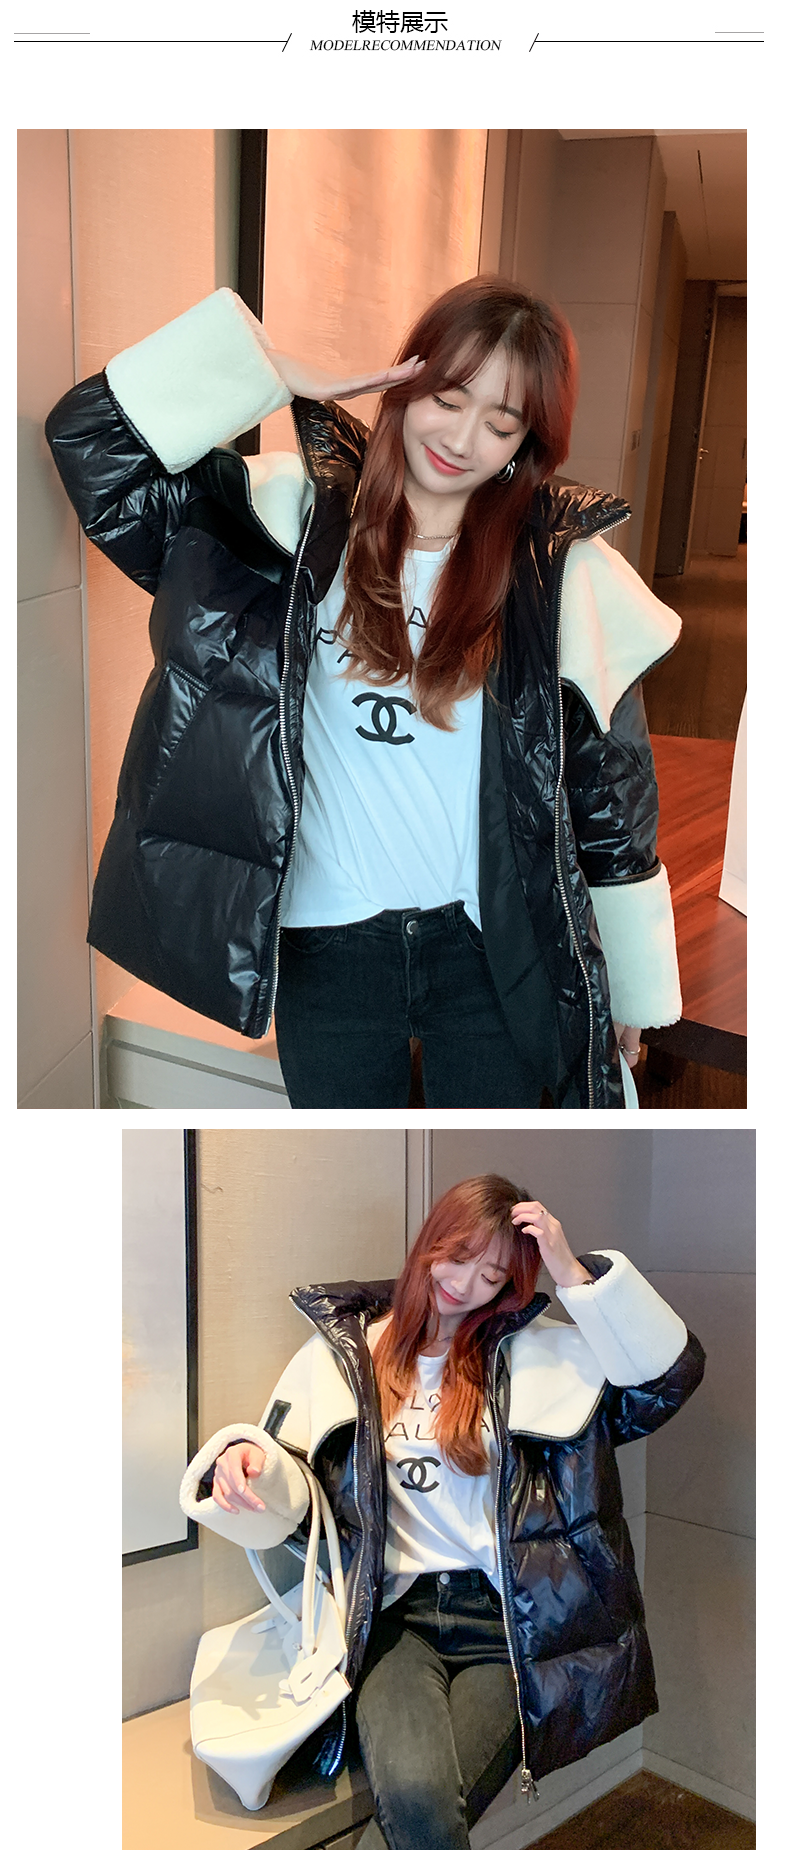 H4633c1288984432986a5fb01a812ffecT 2021 winter new down jacket women new fashion mid-length loose and thin lamb hair stitching white duck down long-sleeved jacket